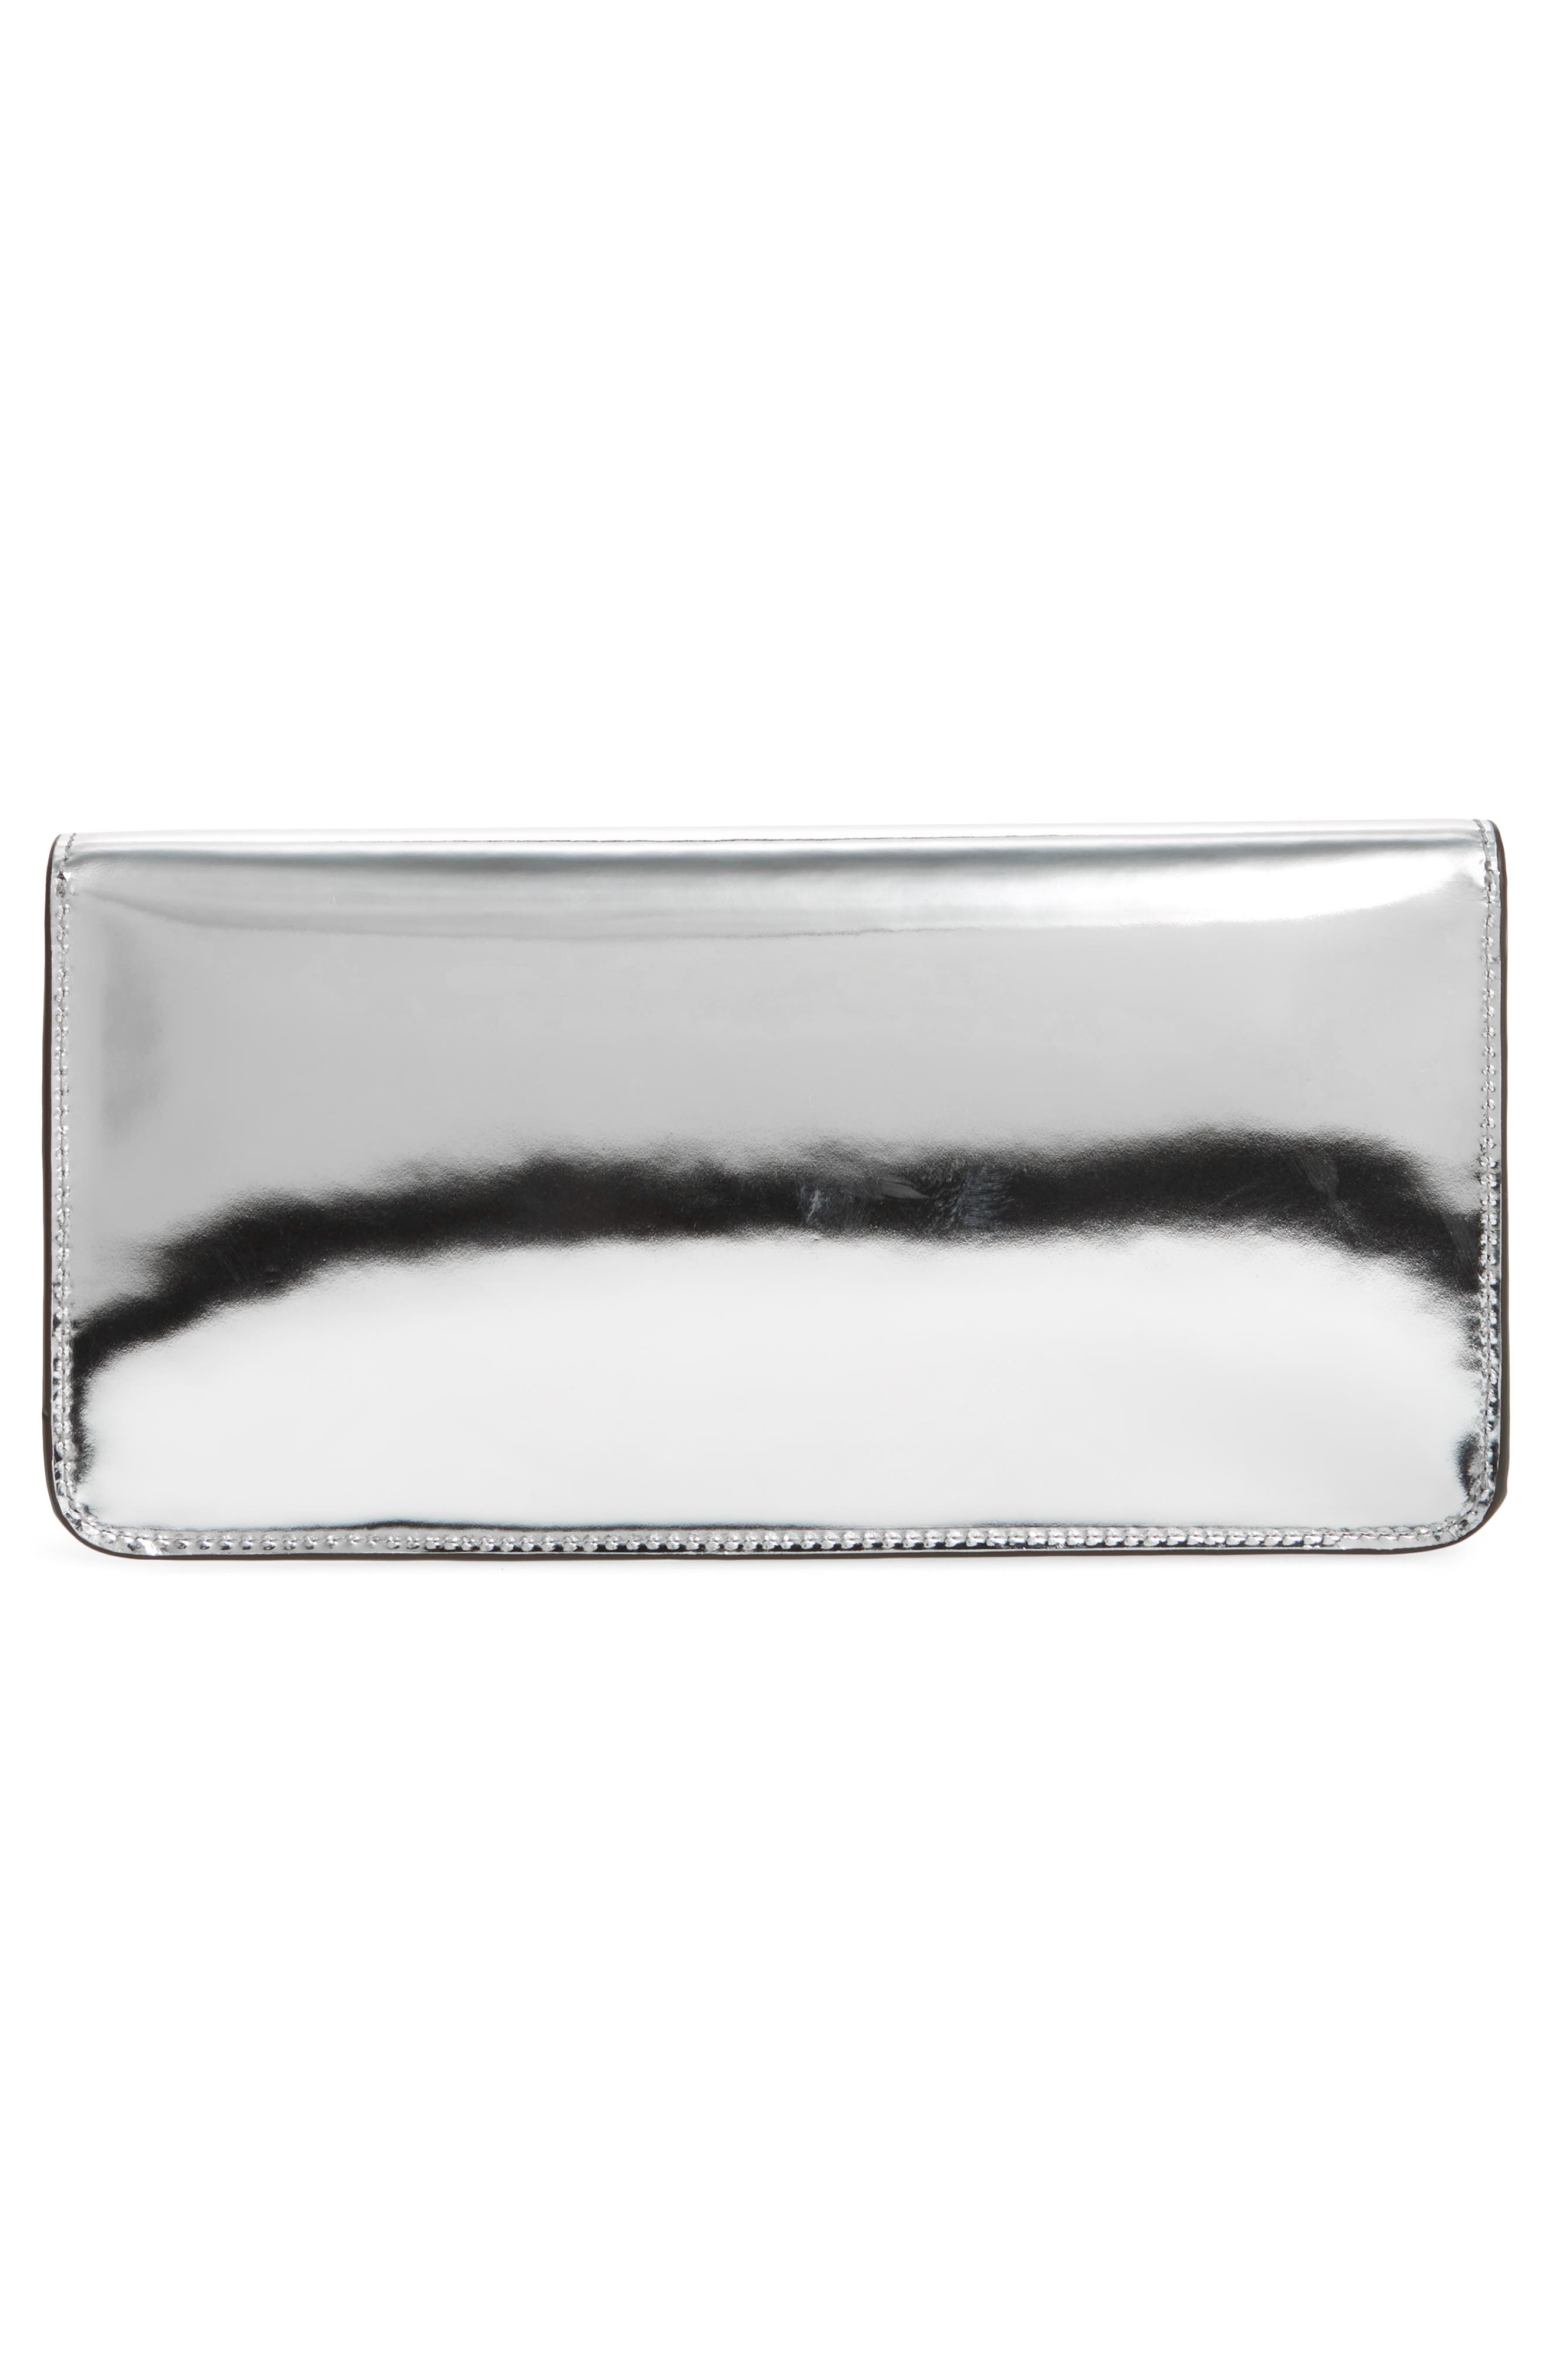 TORY BURCH, Kira Leather Envelope Clutch, Alternate thumbnail 4, color, MIRROR METALLIC SILVER